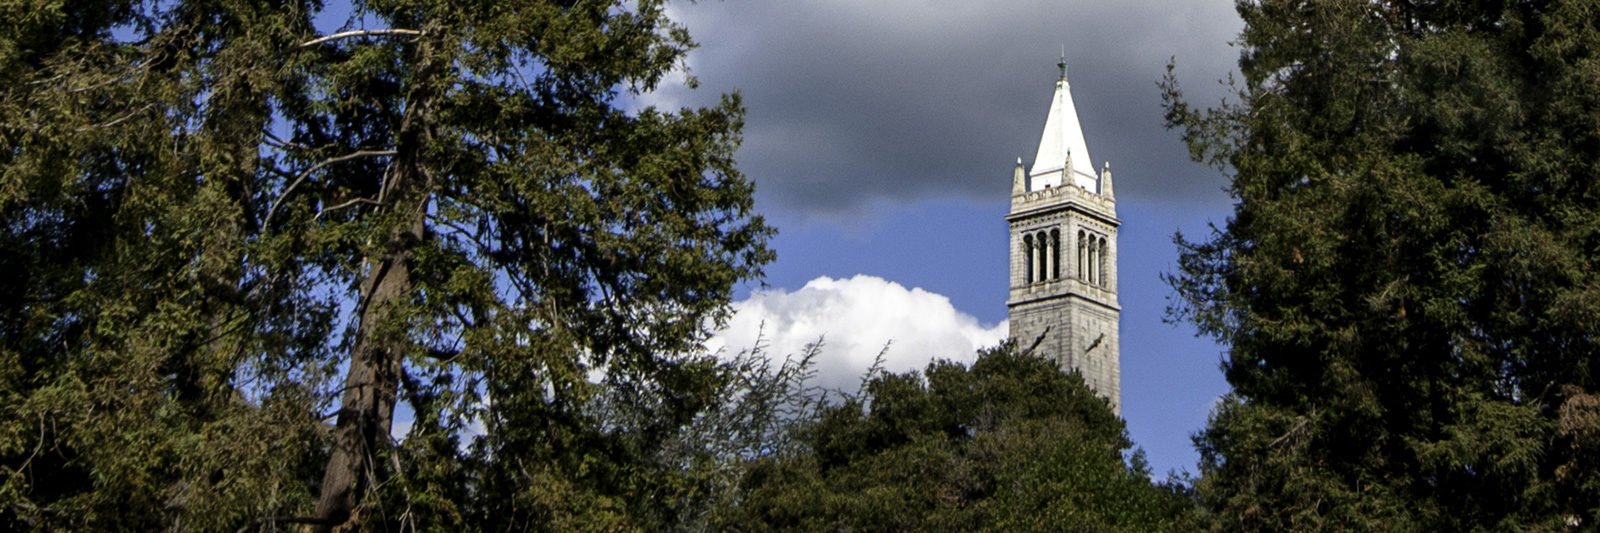 campanile banner image